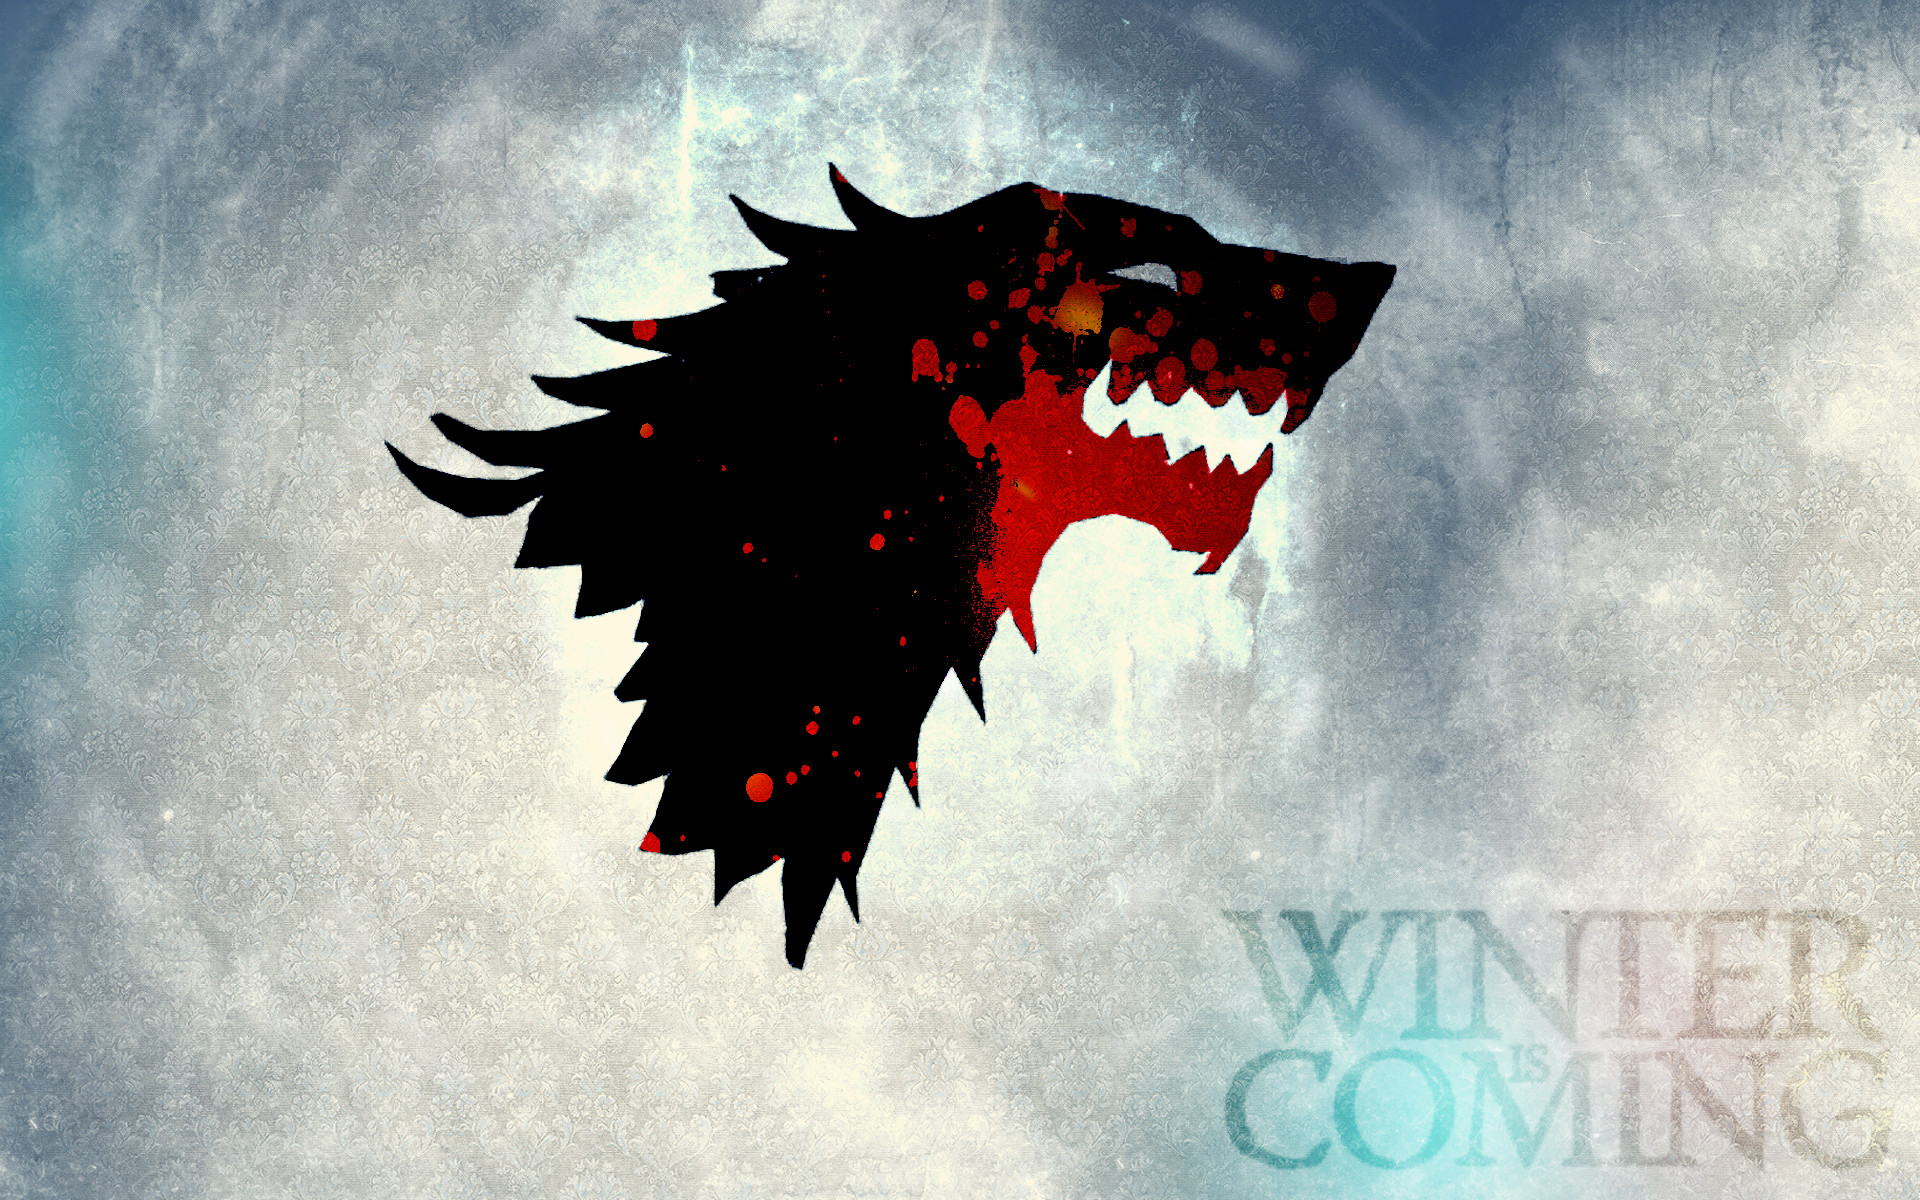 1920x1200 House Stark wallpaper by GeniusMage House Stark wallpaper by GeniusMage